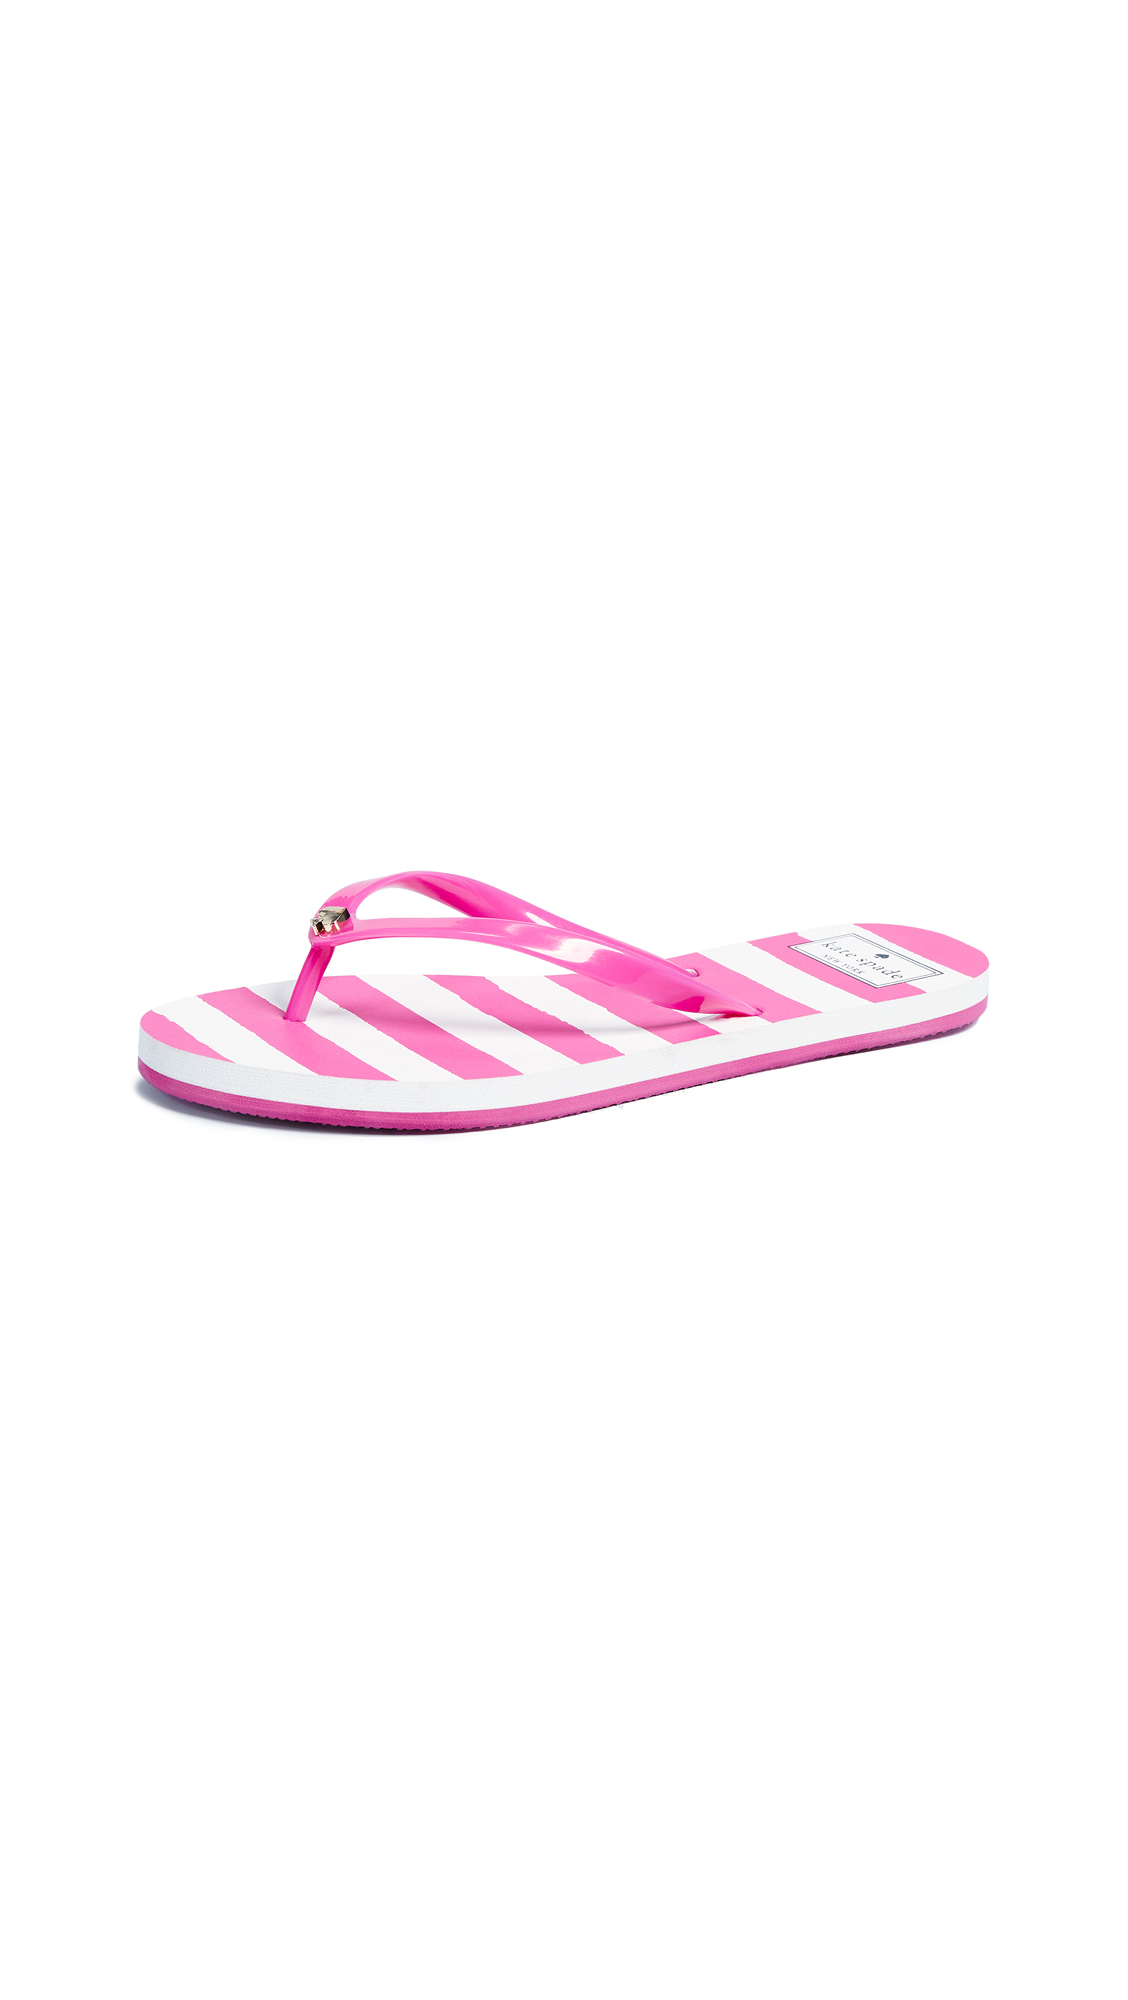 Kate Spade New York Nassau Flip Flops - Pink/White Stripe